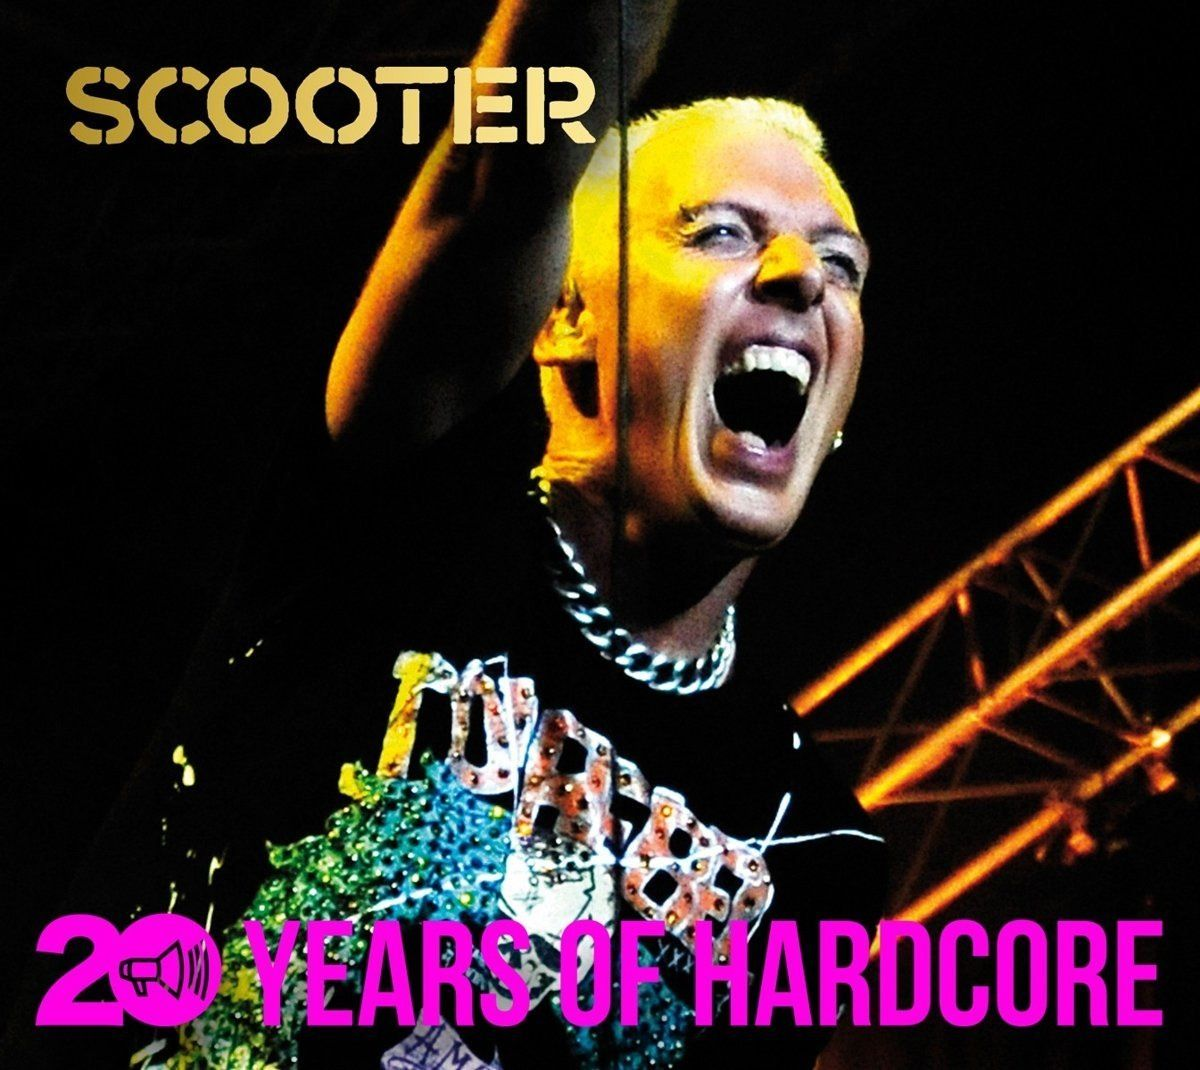 Scooter - 20 Years Of Hardcore album cover